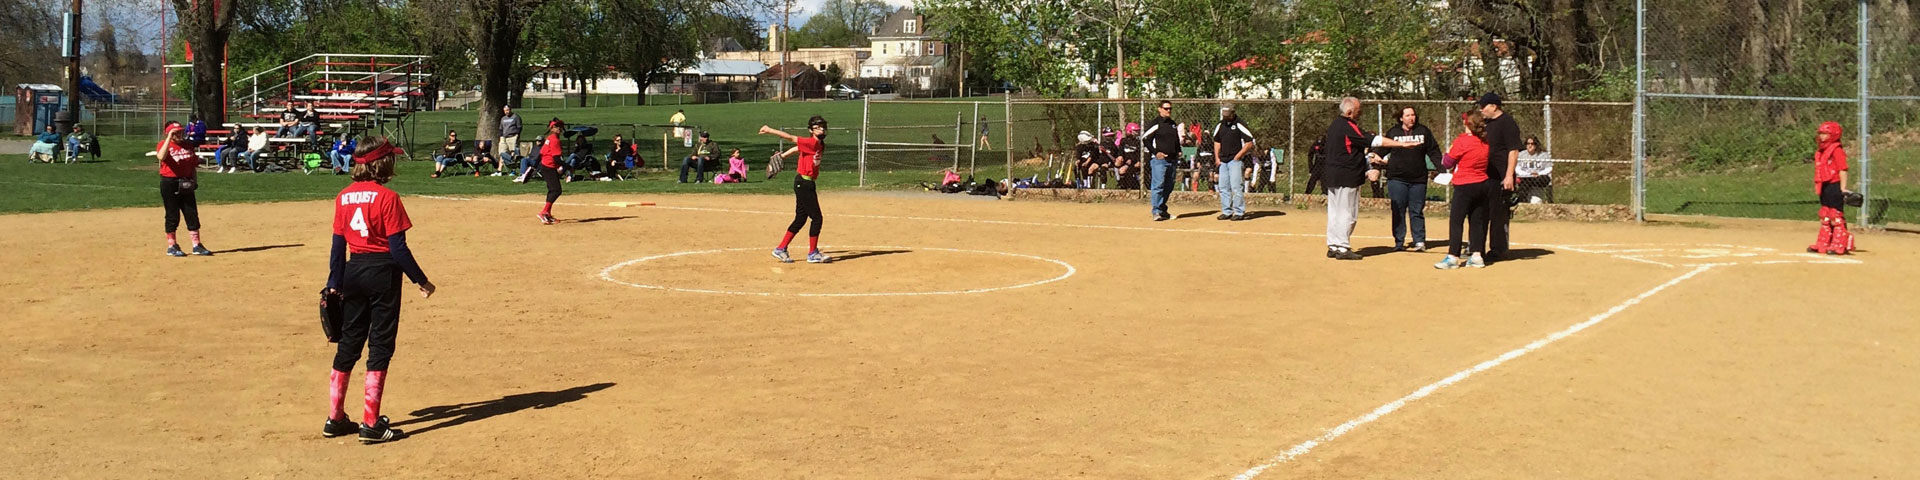 Girls get ready to field the ball during a softball game.